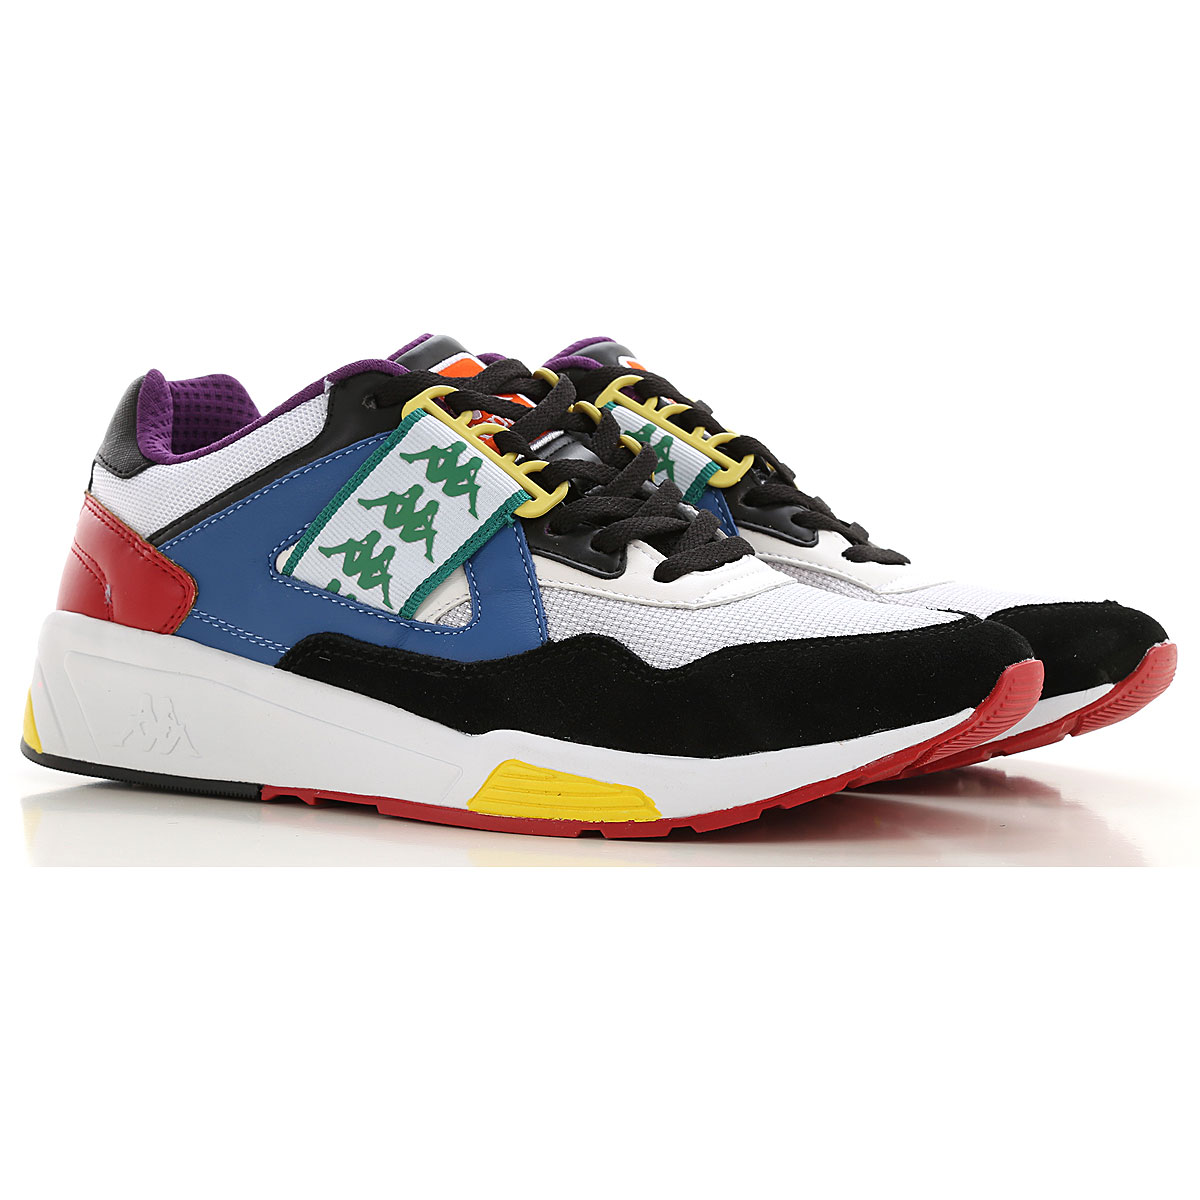 Kappa Sneakers for Men On Sale, Multicolor, Fabric, 2019, 10 7.5 8 9